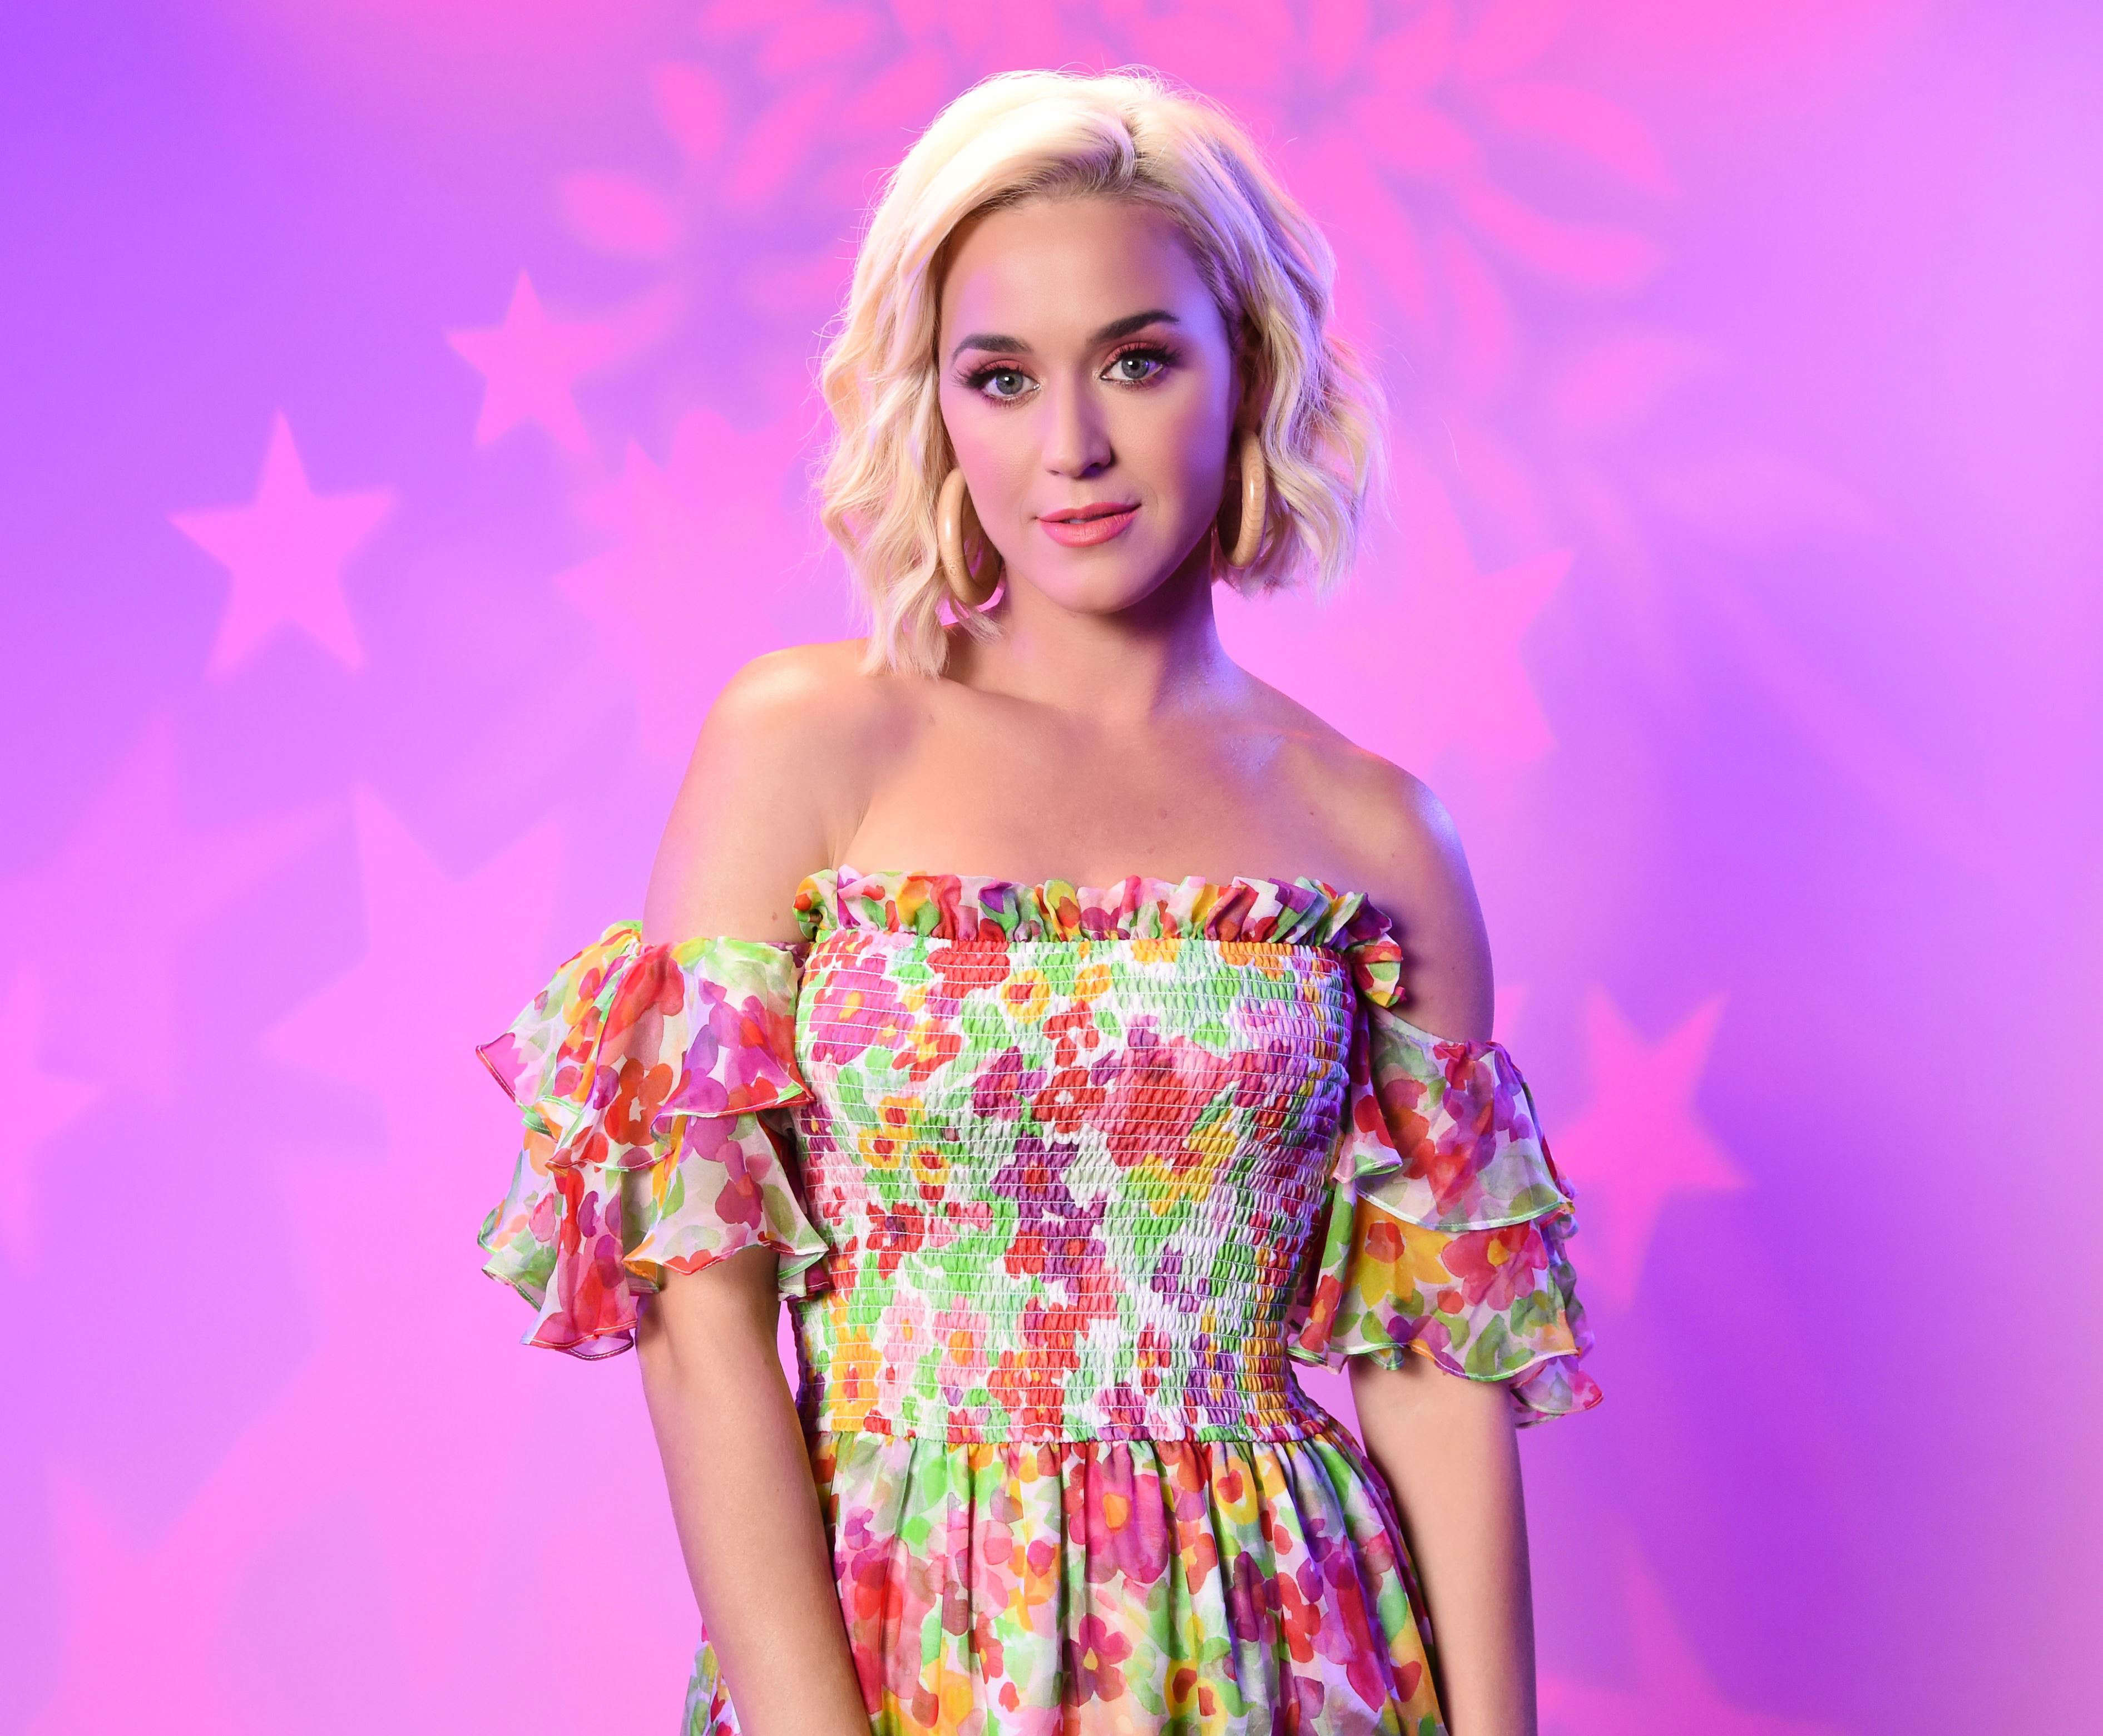 Slide 8 of 11: LOS ANGELES, CALIFORNIA - AUGUST 07: Katy Perry visits the SiriusXM Studios on August 07, 2019 in Los Angeles, California. (Photo by Michael Kovac/Getty Images for SiriusXM)